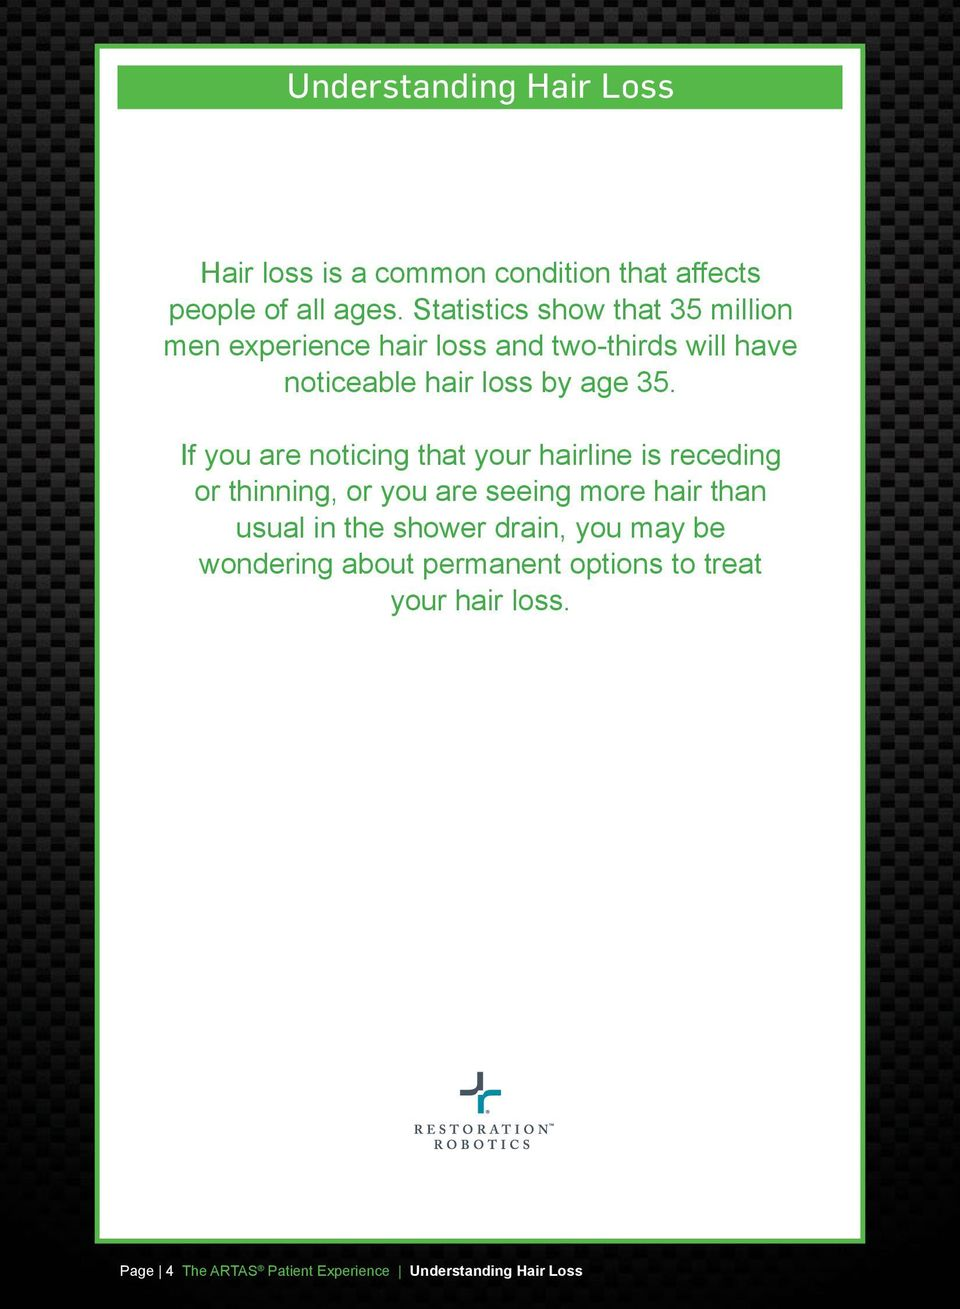 If you are noticing that your hairline is receding or thinning, or you are seeing more hair than usual in the